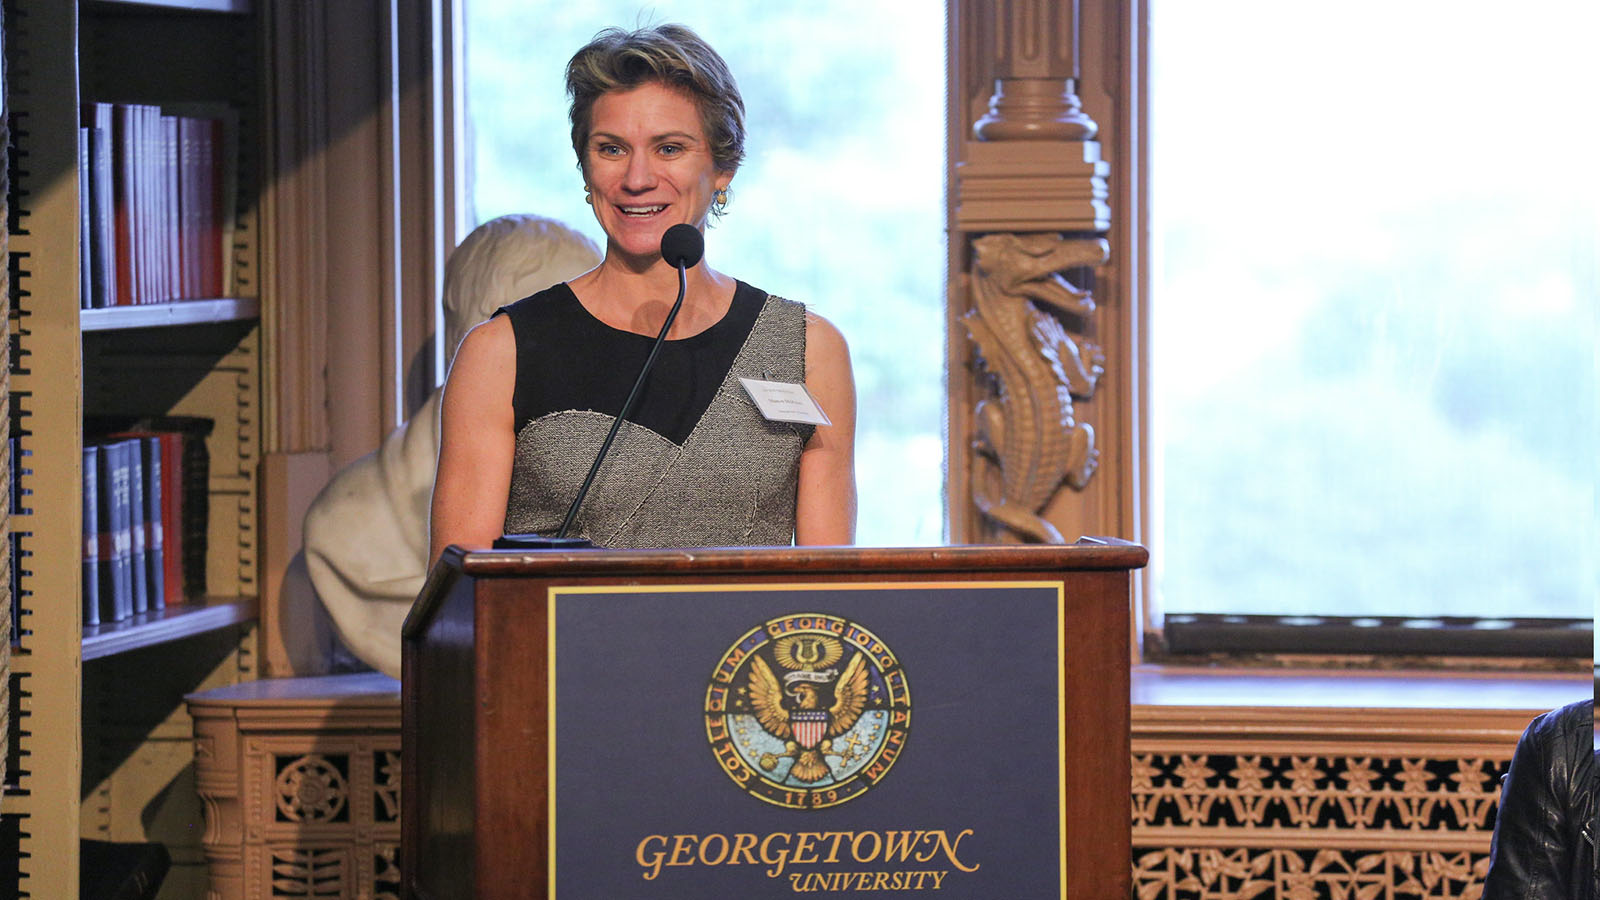 Maeve McKean talking at a conference at Georgetown University